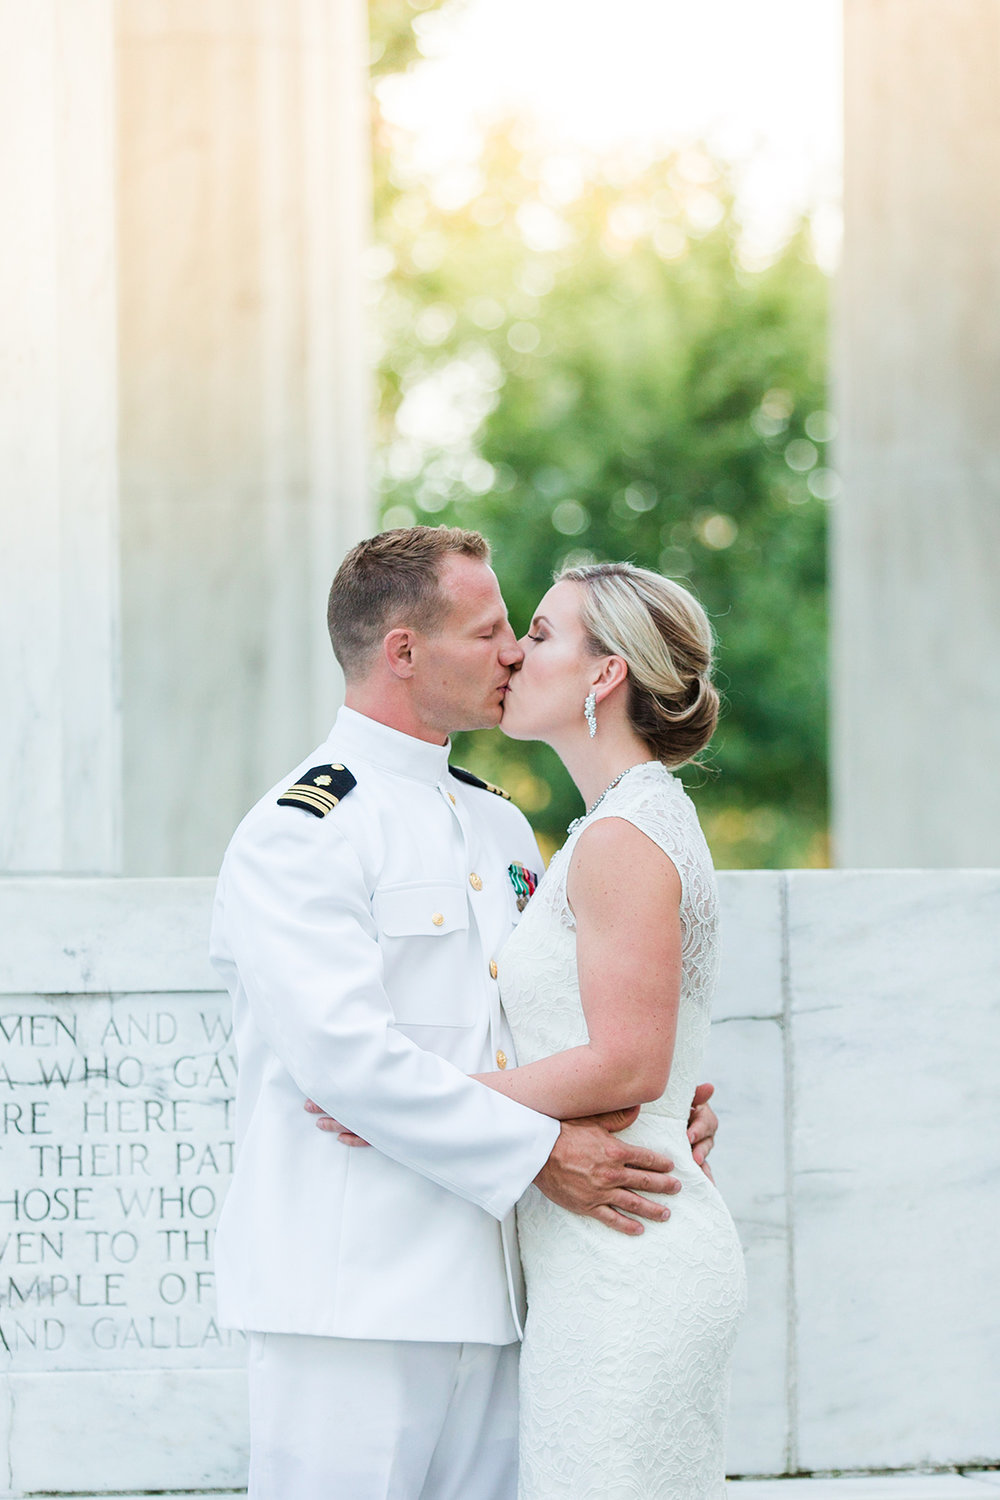 Intimate-Military-Elopement-kiss.jpg